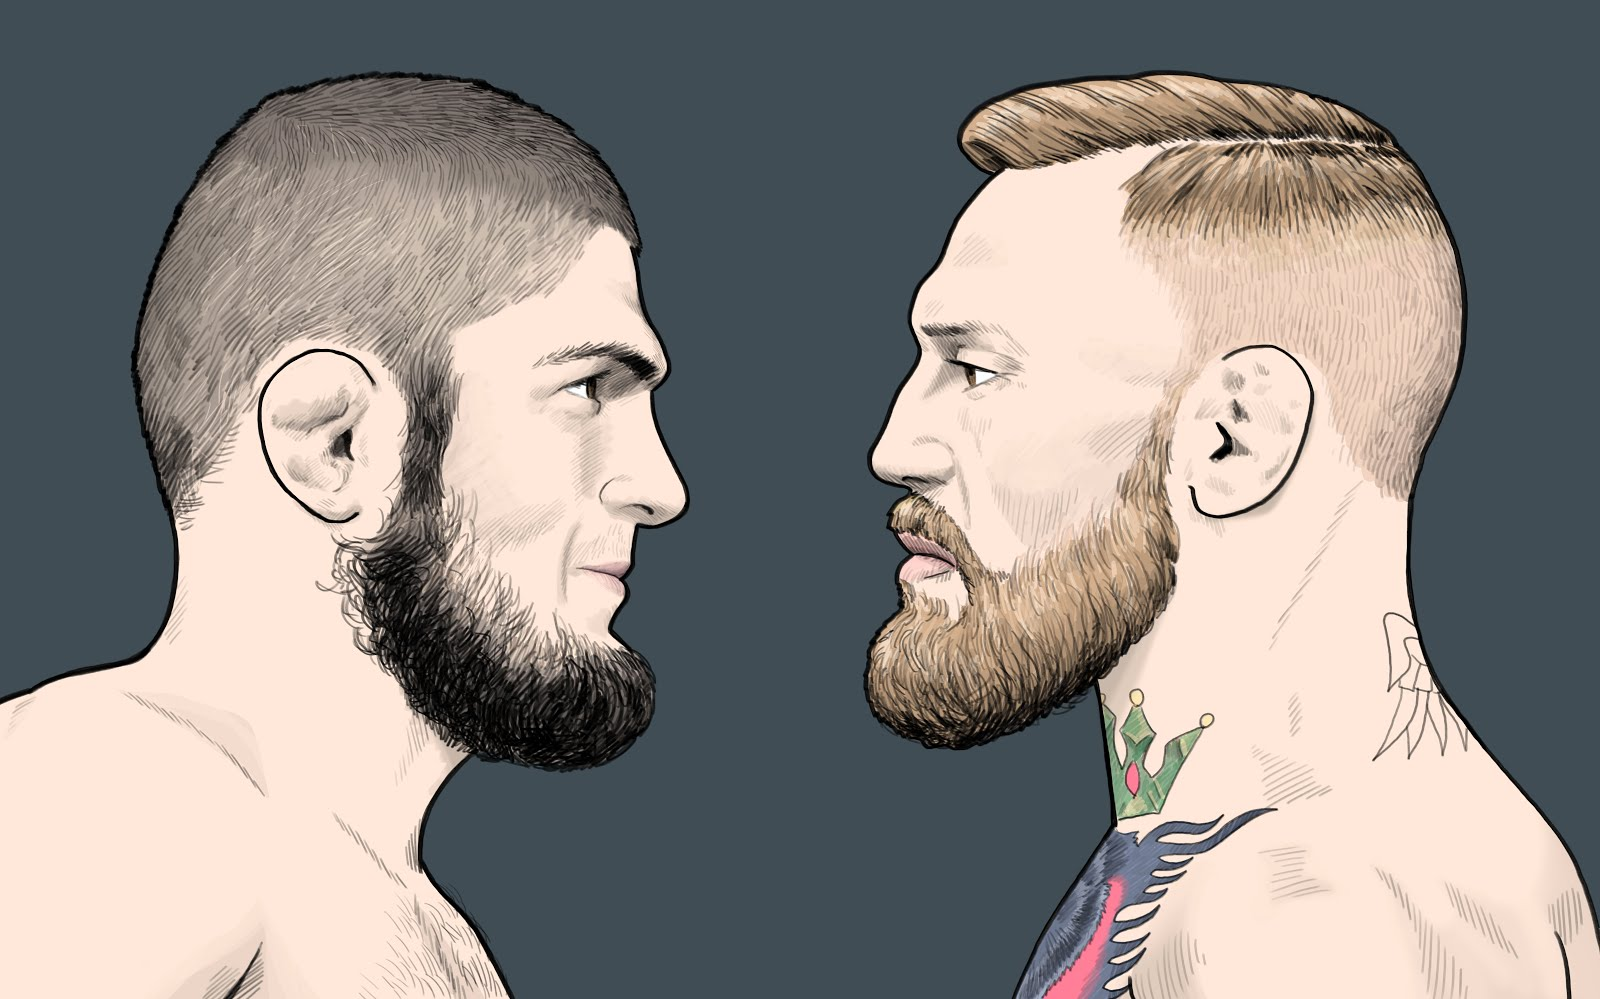 Khabib v Conor McGregor Illustration